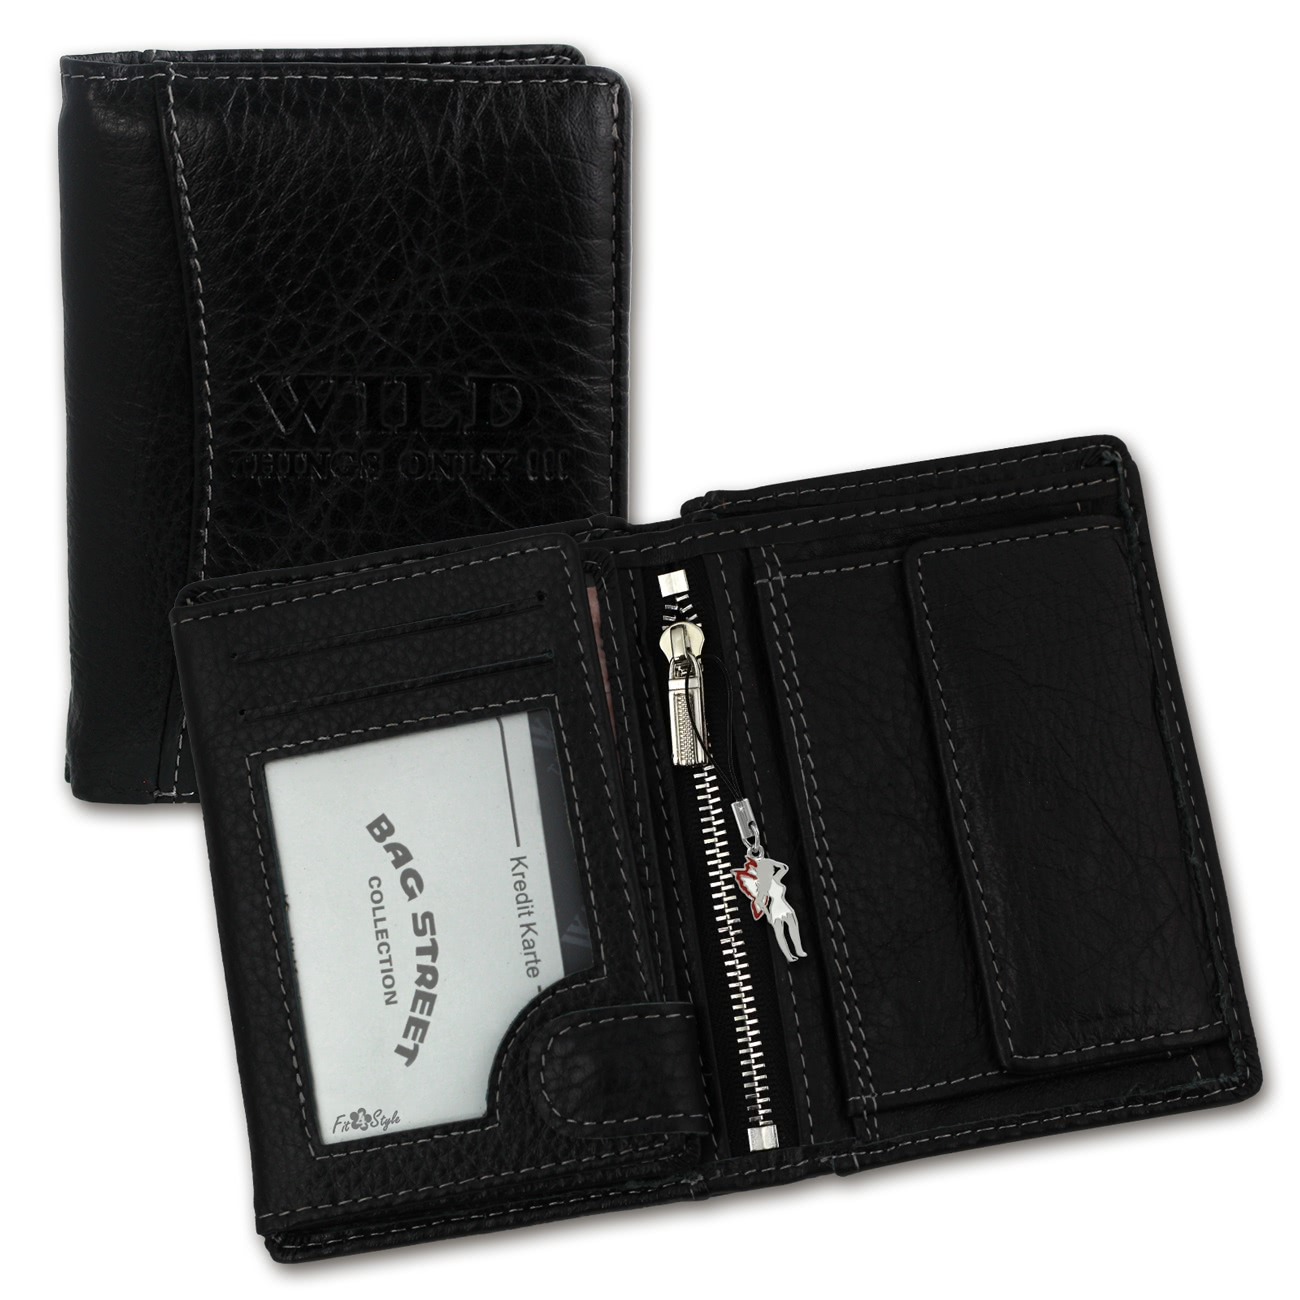 thing and wallet Sleek and classic, our personalized leather passcase bifold wallets are just the thing for men who like to keep it simple genuine leather designs offer durability.